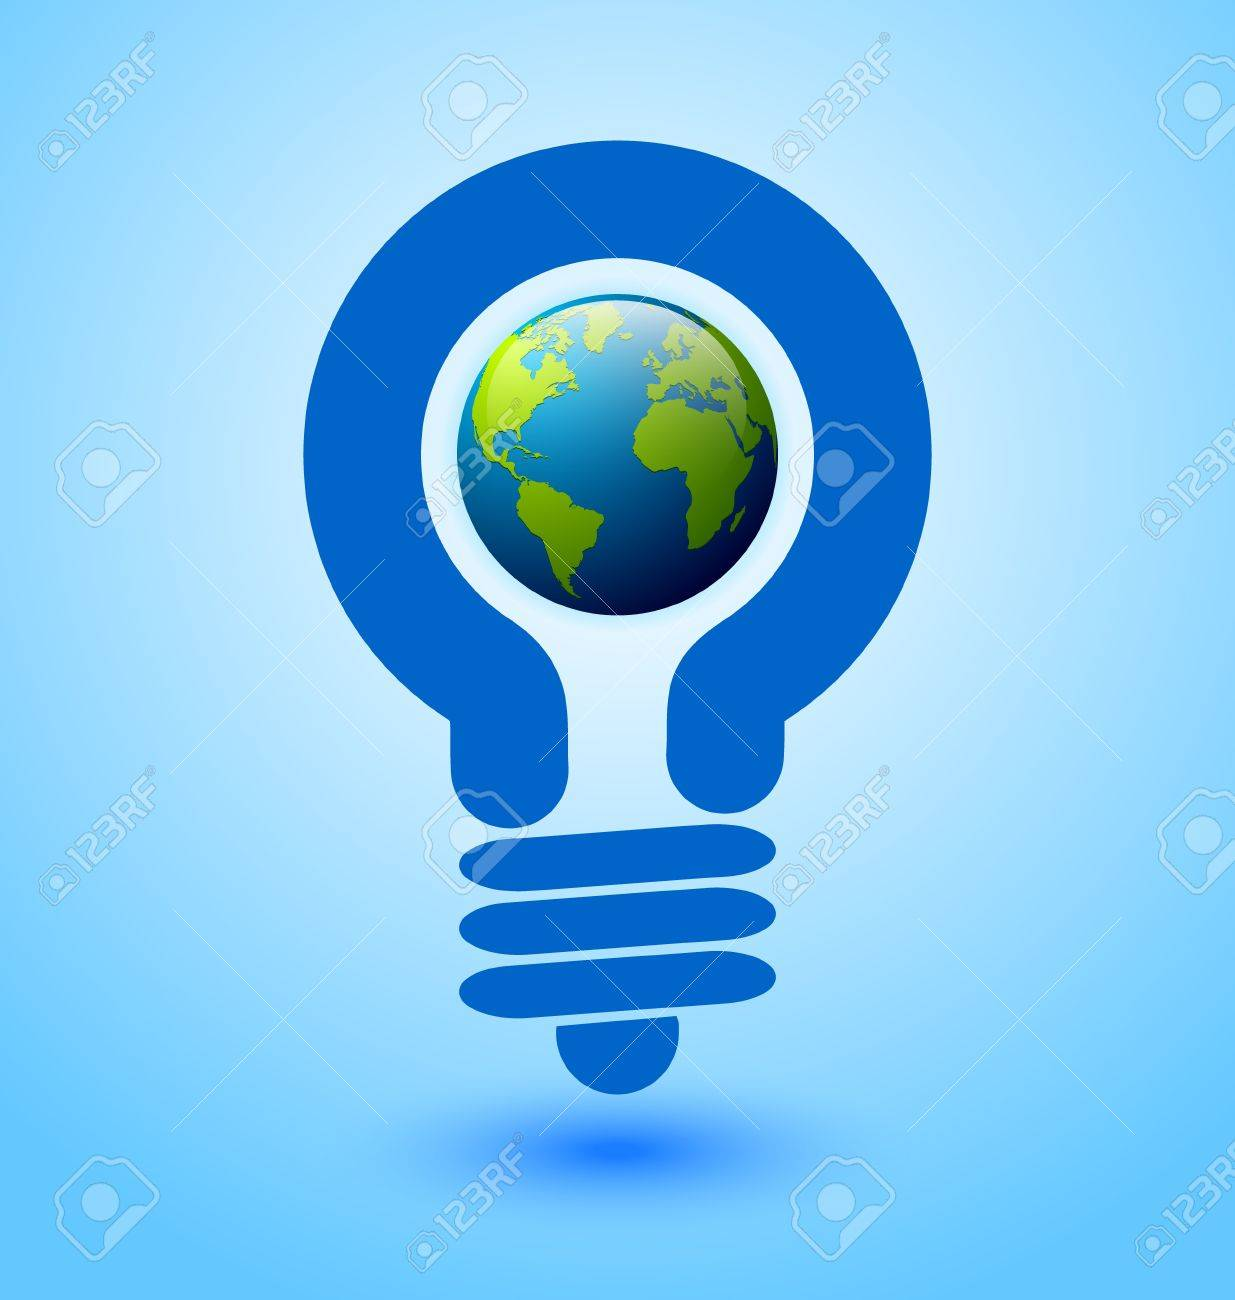 Ecology and saving energy icon with light bulb and planet Earth Stock Vector - 12925399